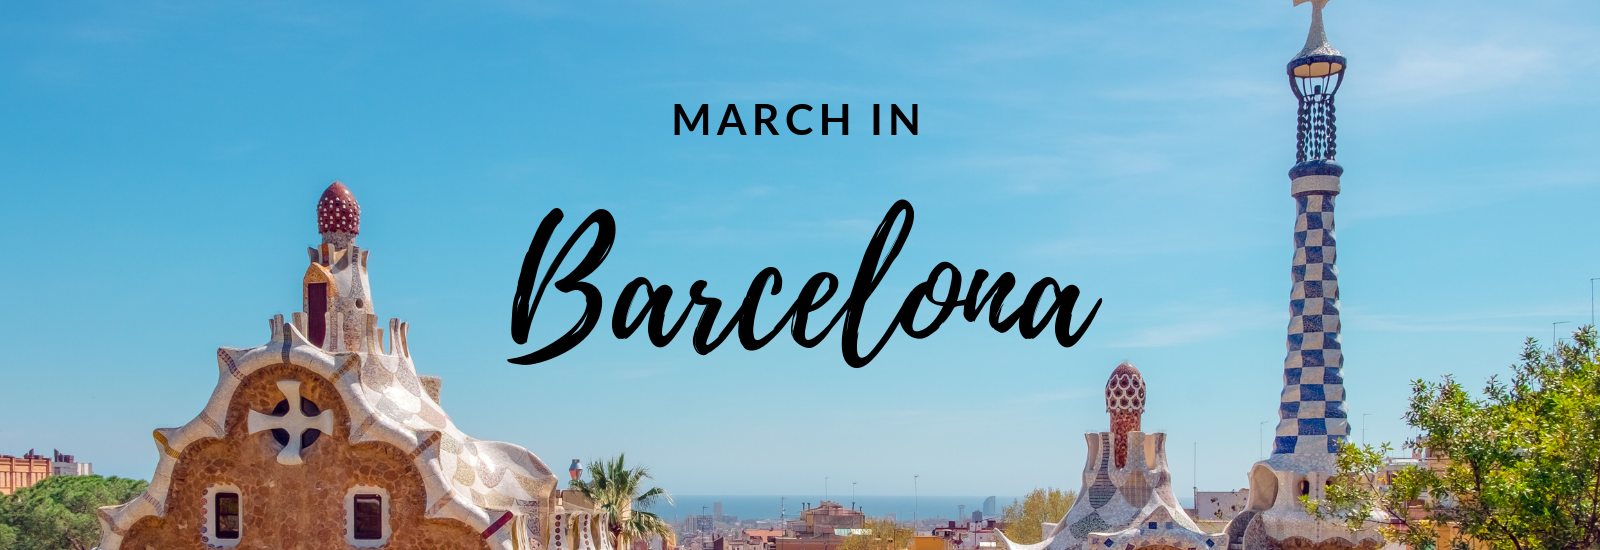 March in Barcelona